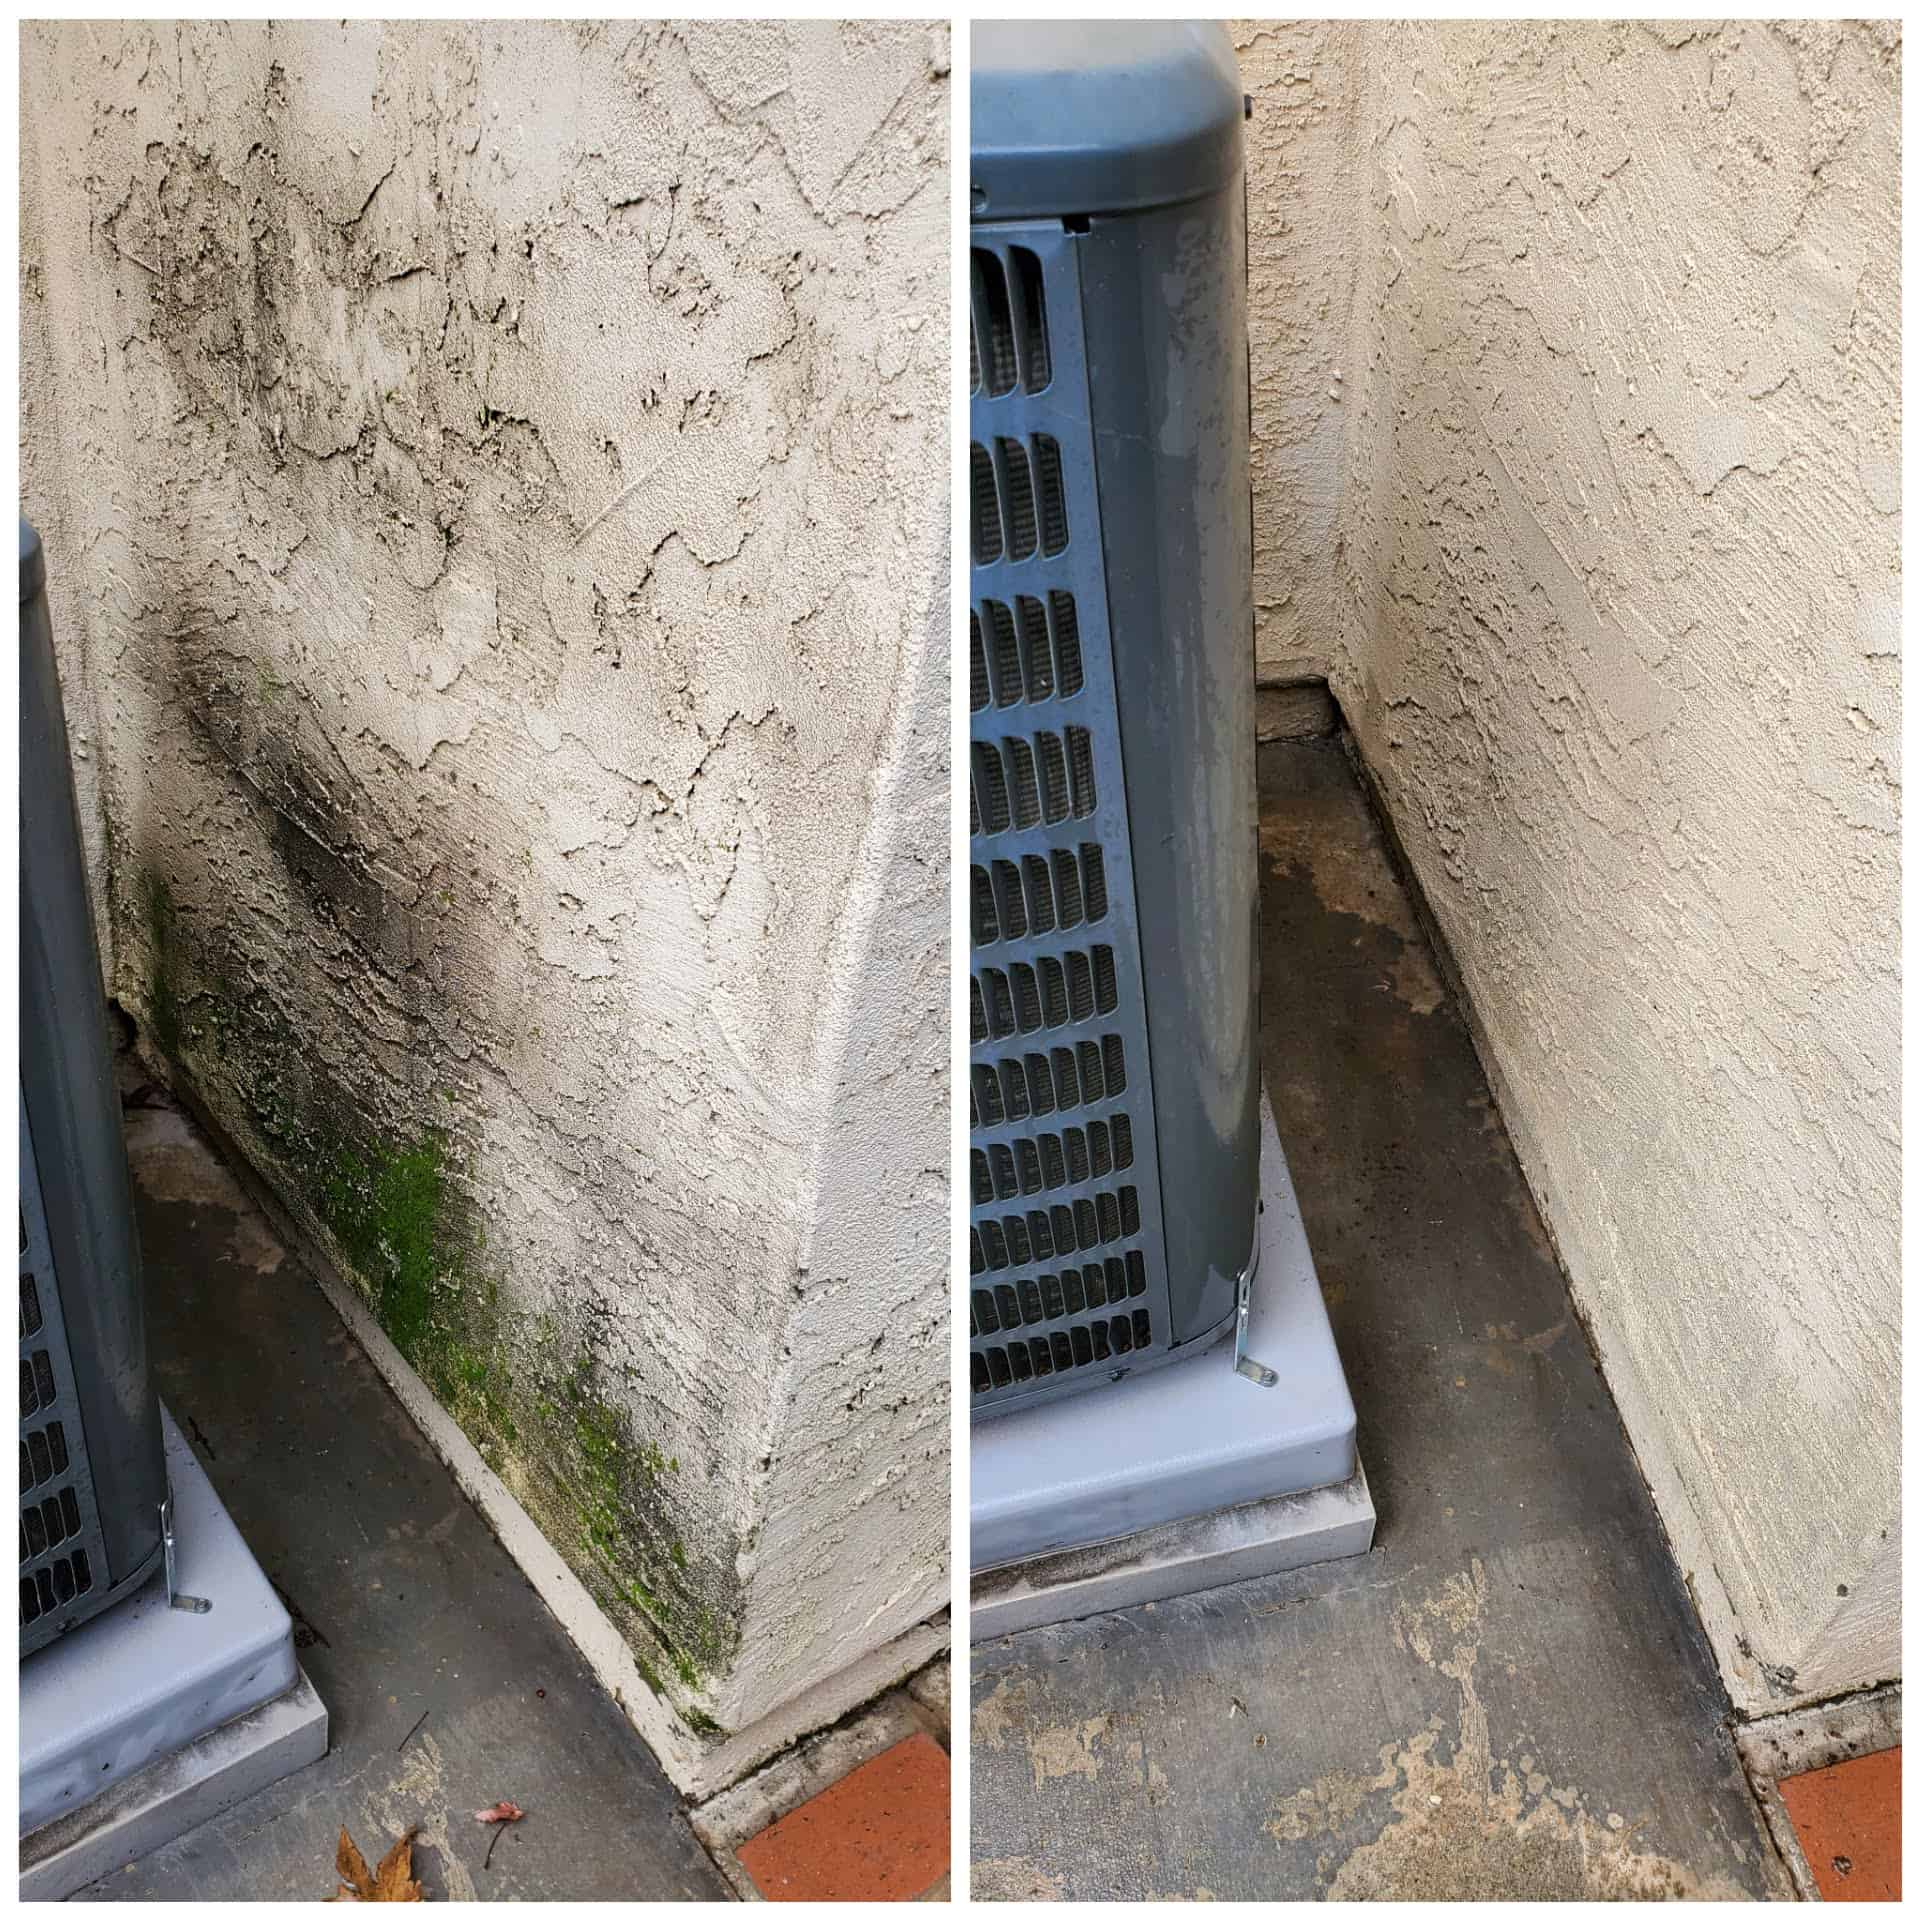 Pressure Washing, Power Washing, and Soft Washing?